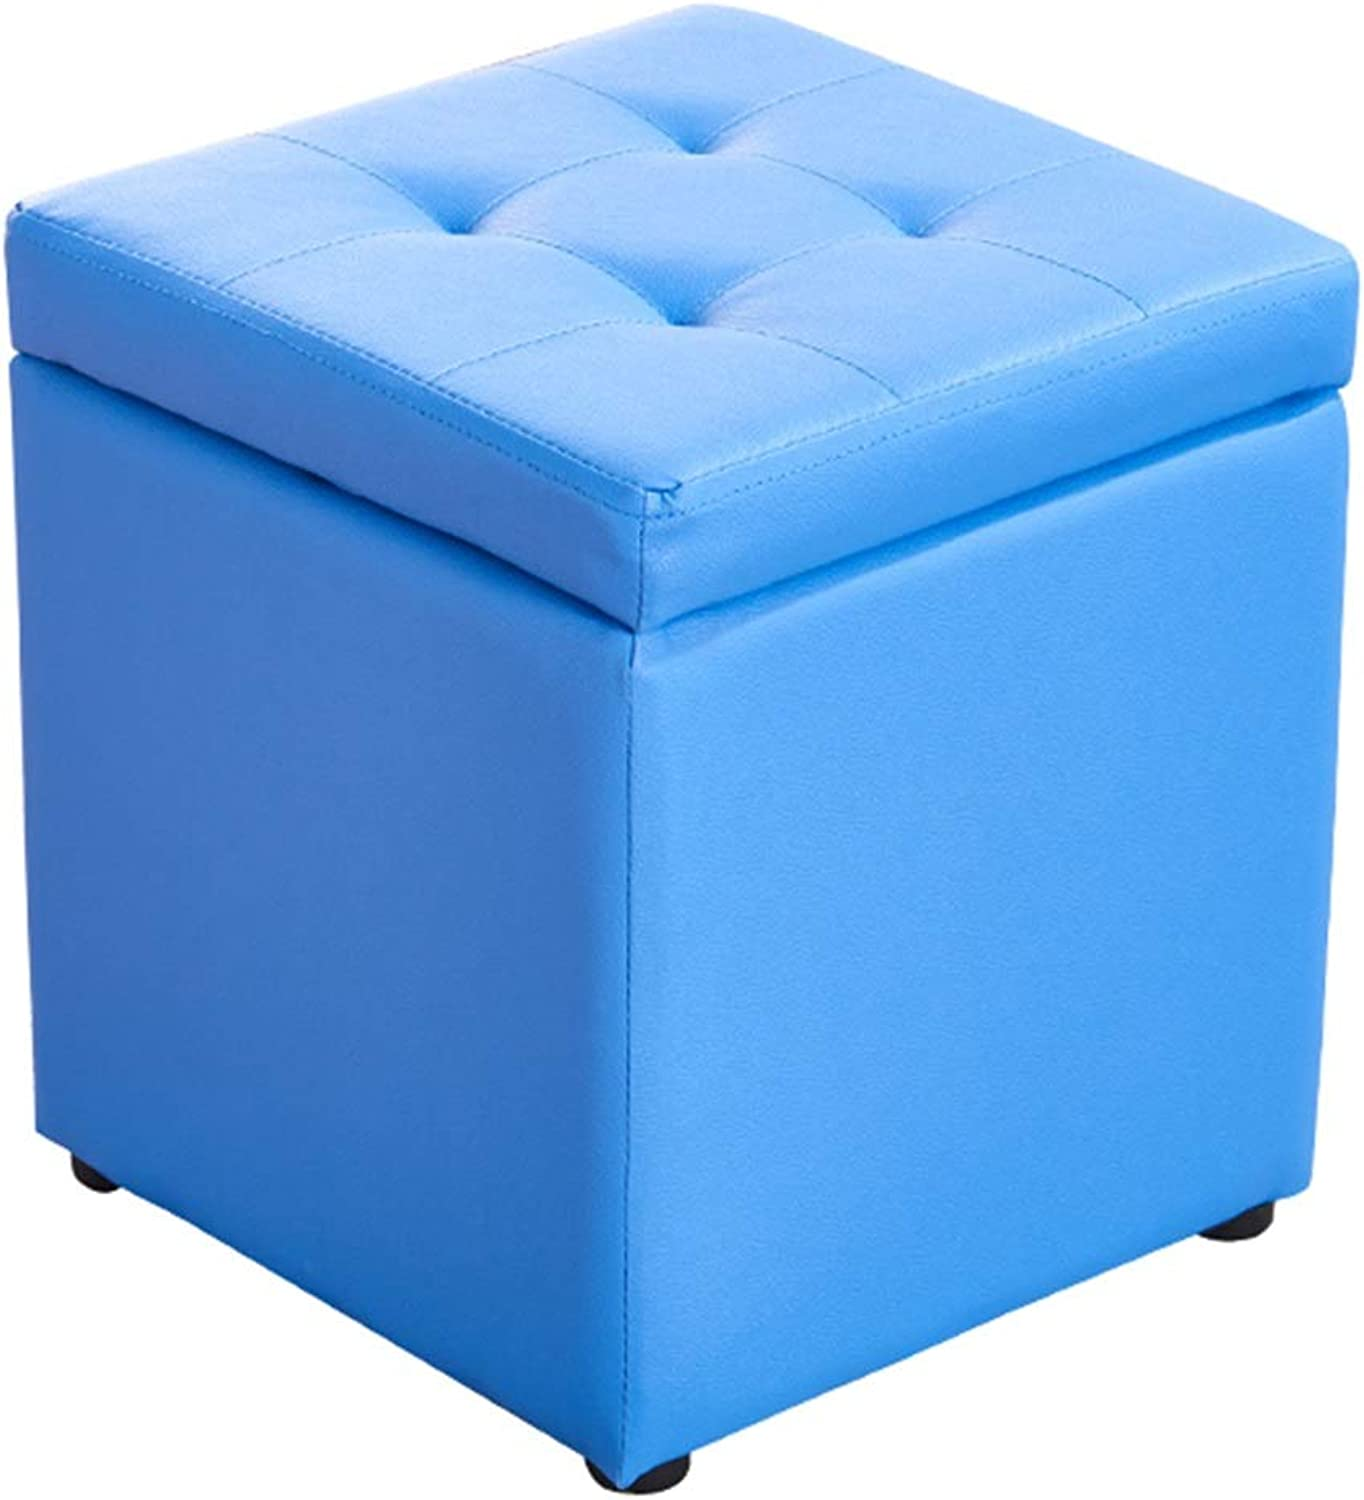 ZXQZ Stool Solid Wood Storage Leather Stool 40x40x40cm Home Storage Stool Sofa Footstool (color   bluee)